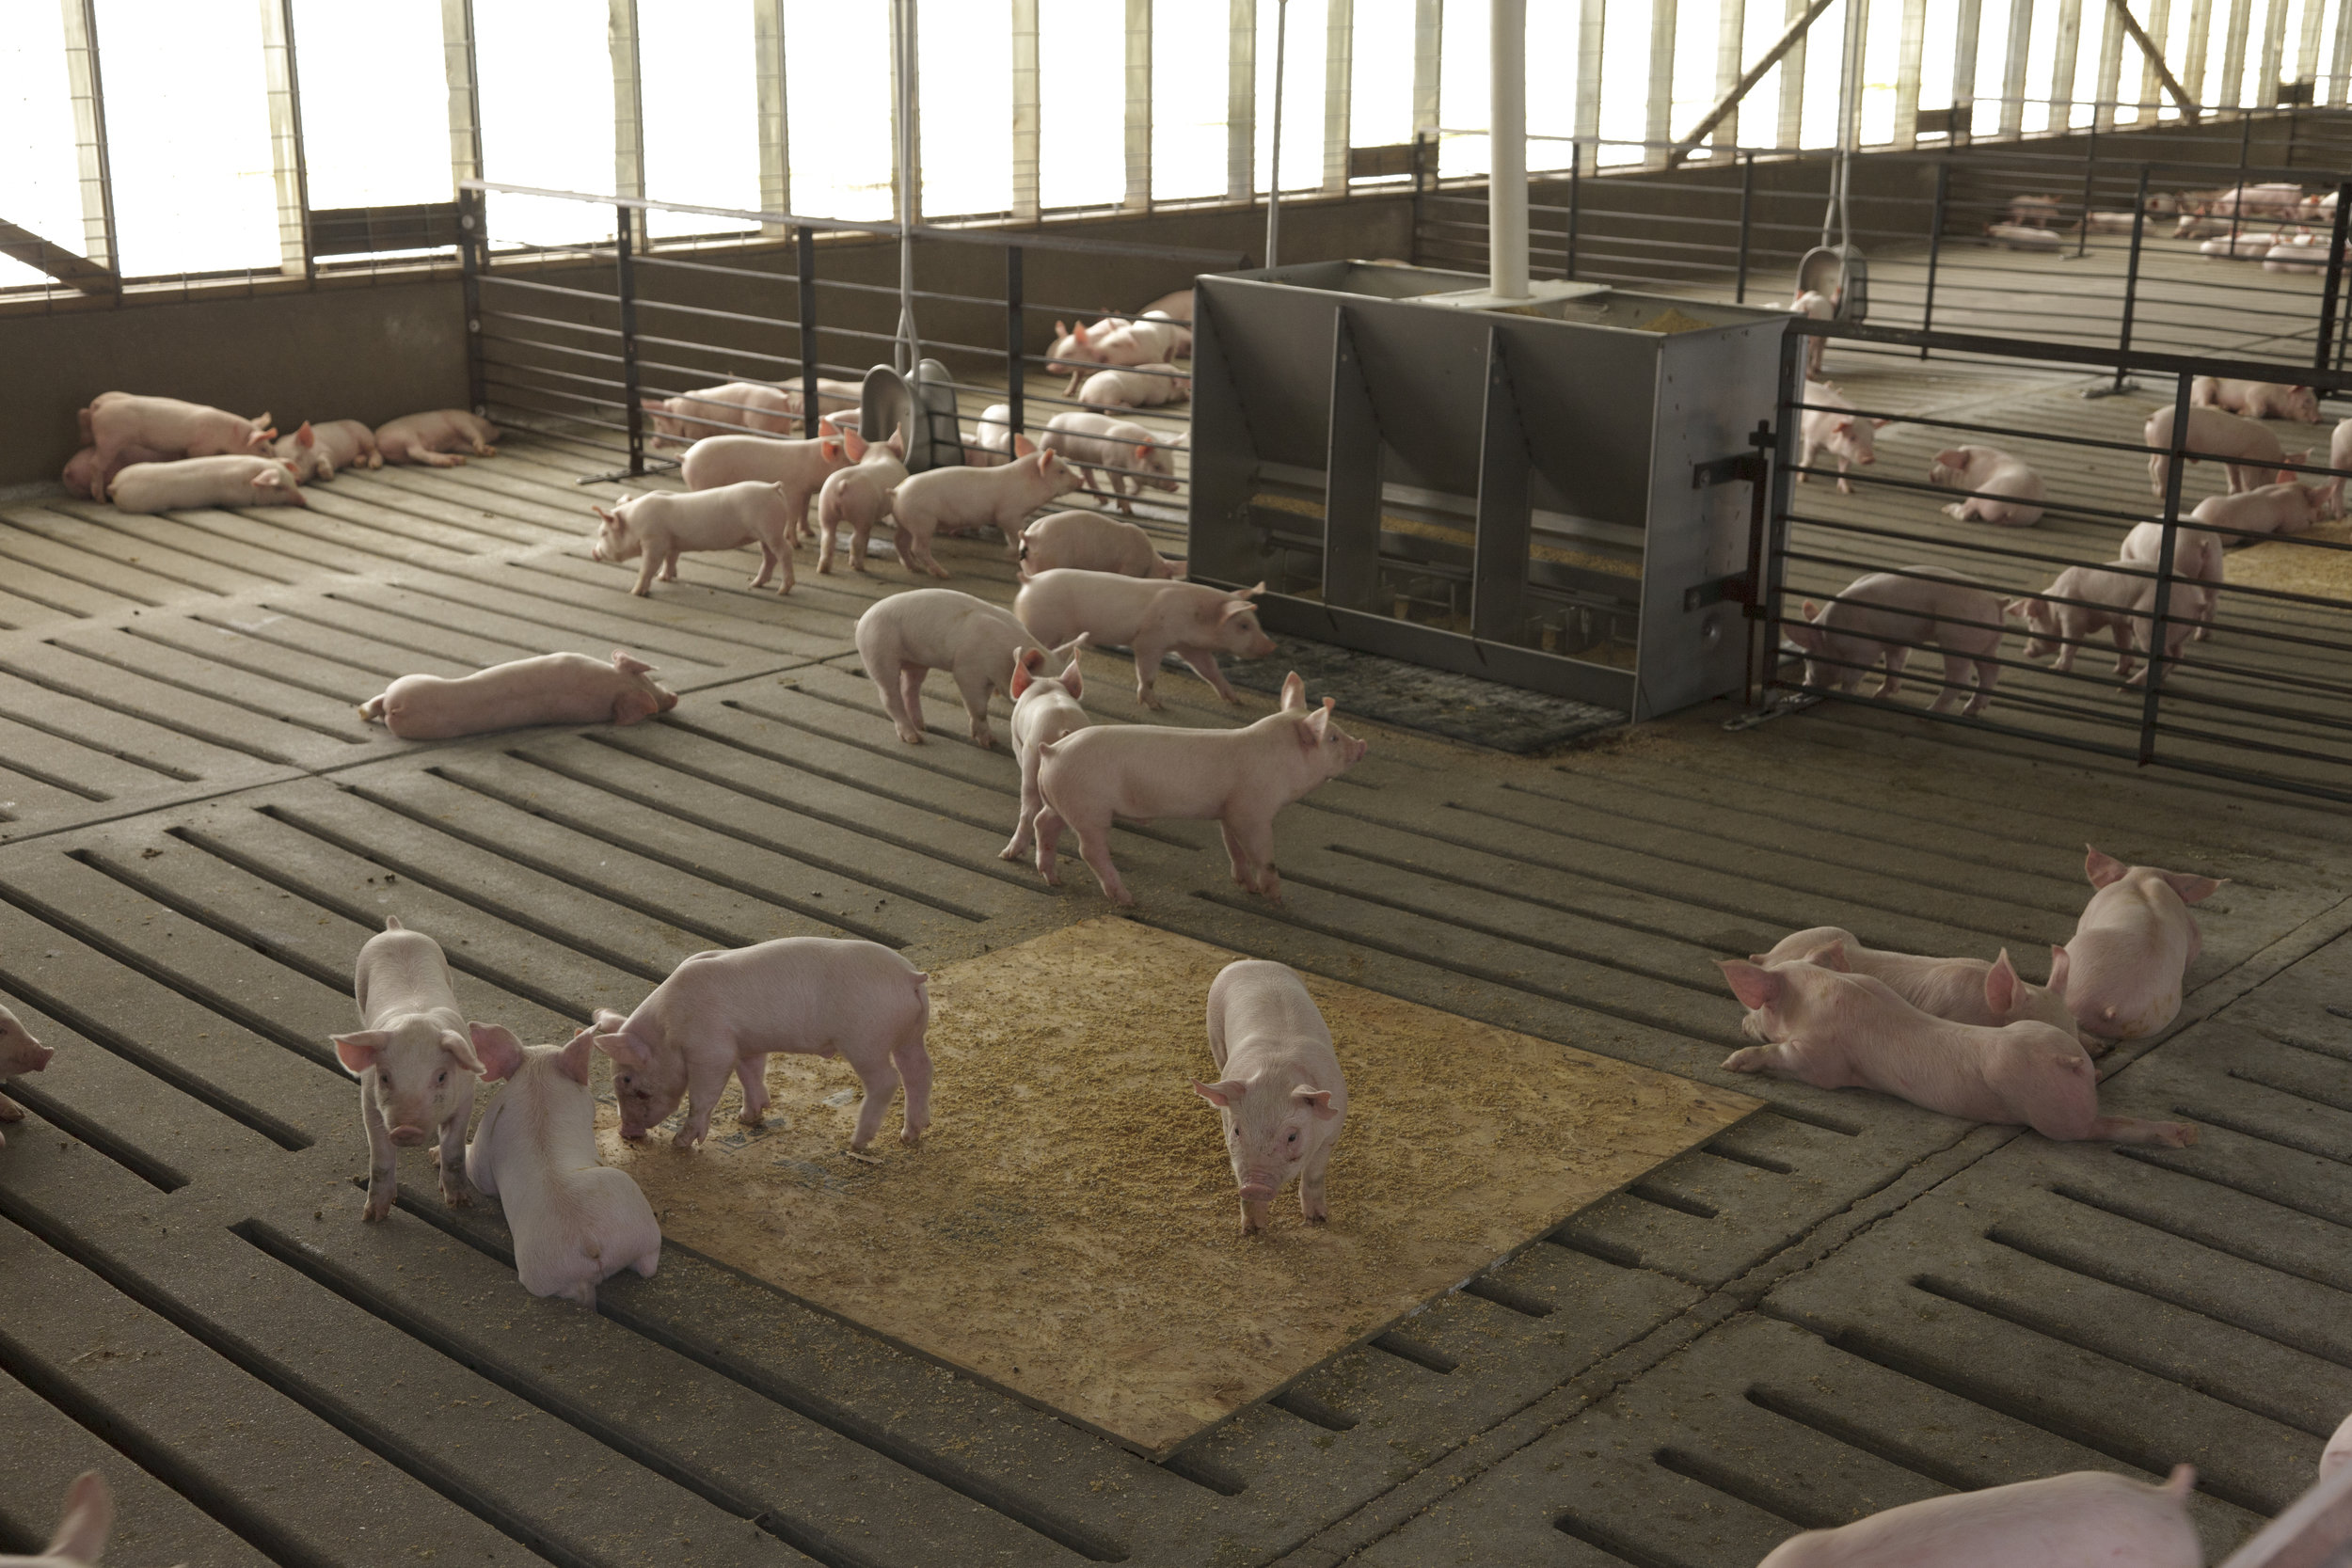 Young hogs in confined hog farm. Image by United Soybean Board via flickr.com